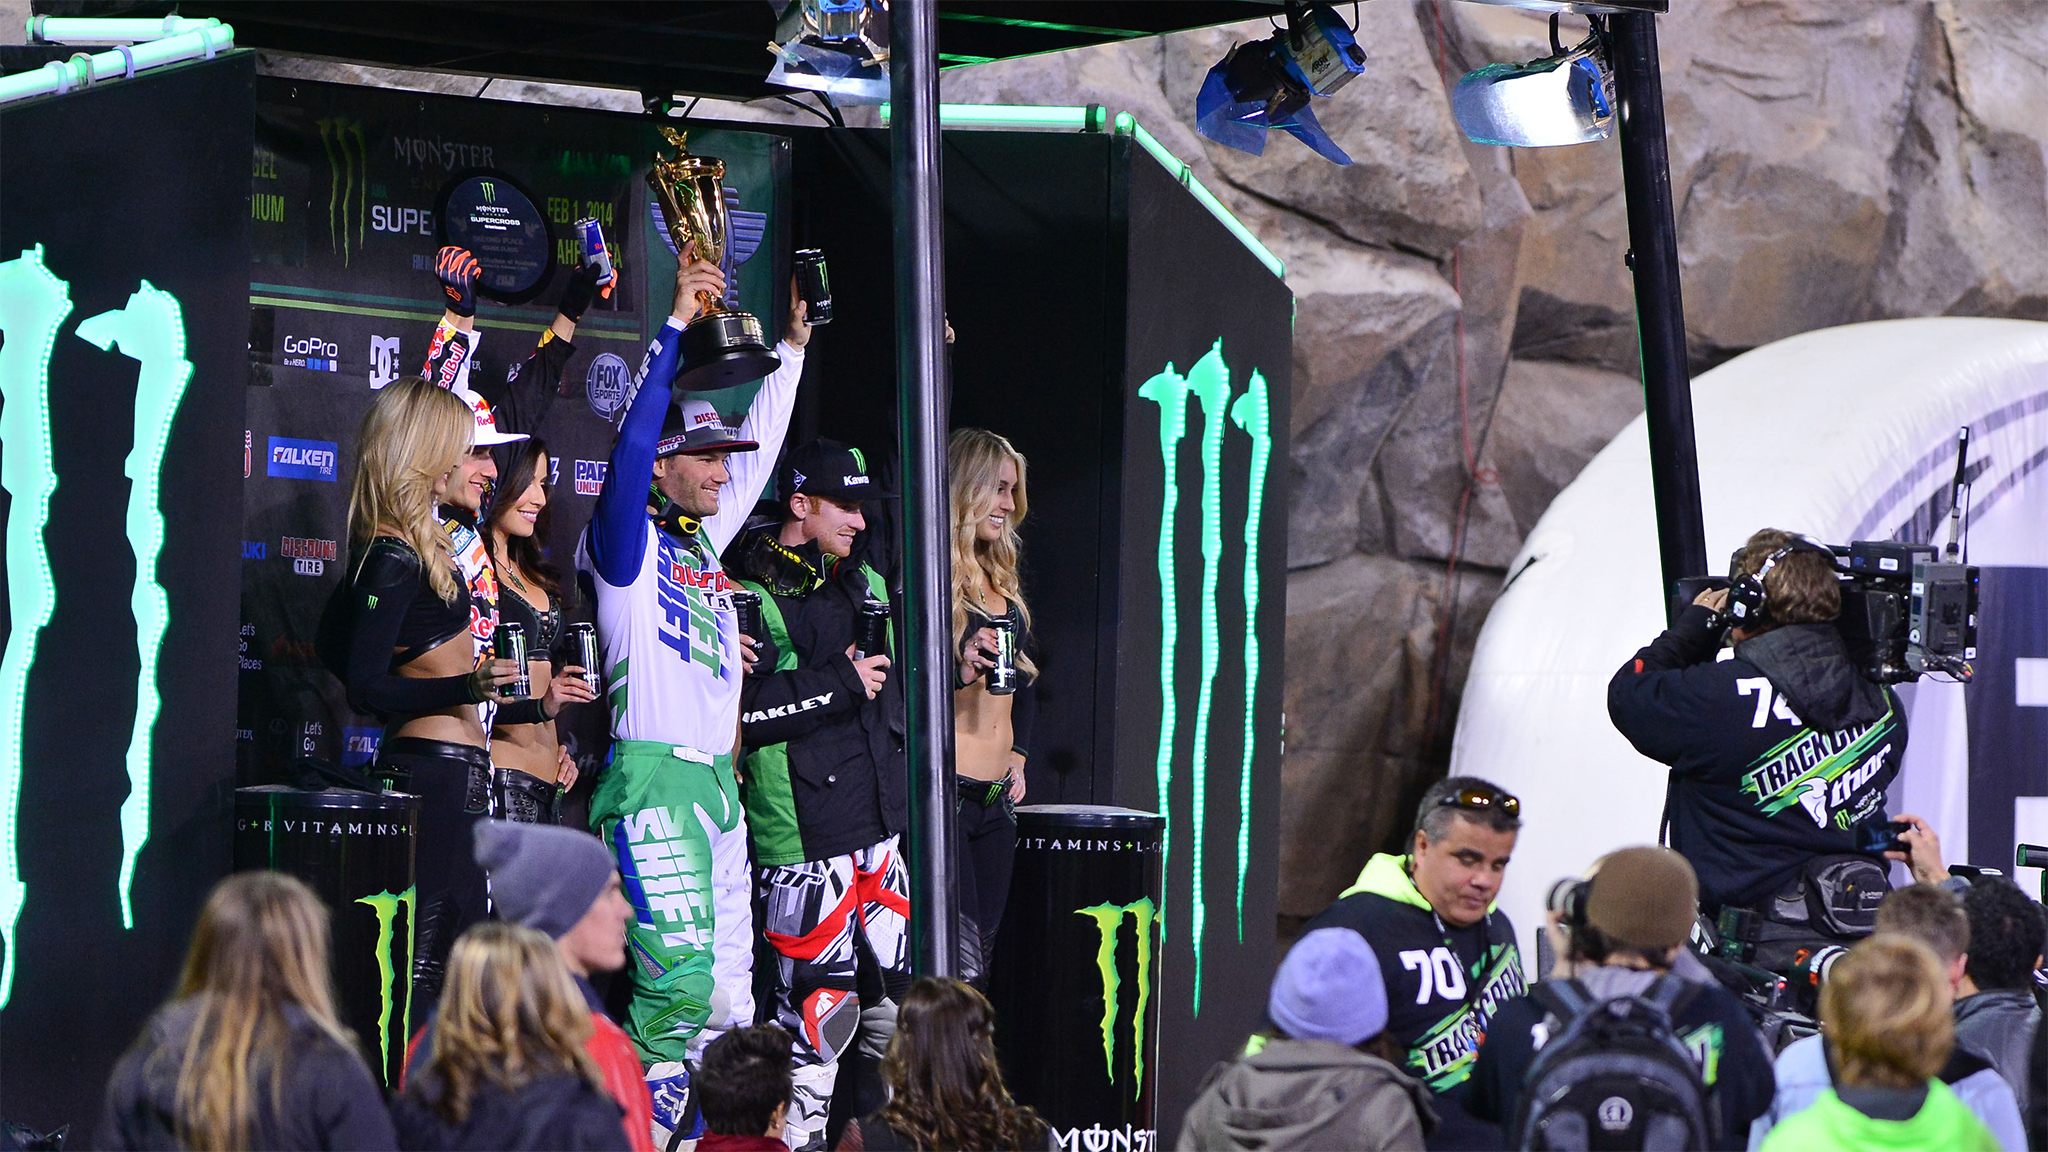 Chad Reed started his 2014 Supercross campaign with a bang, winning two of the first five events, but a crash in Februrary ended his title hopes. Now healed, Reed hopes to find the fountain of youth and win motocross this summer.